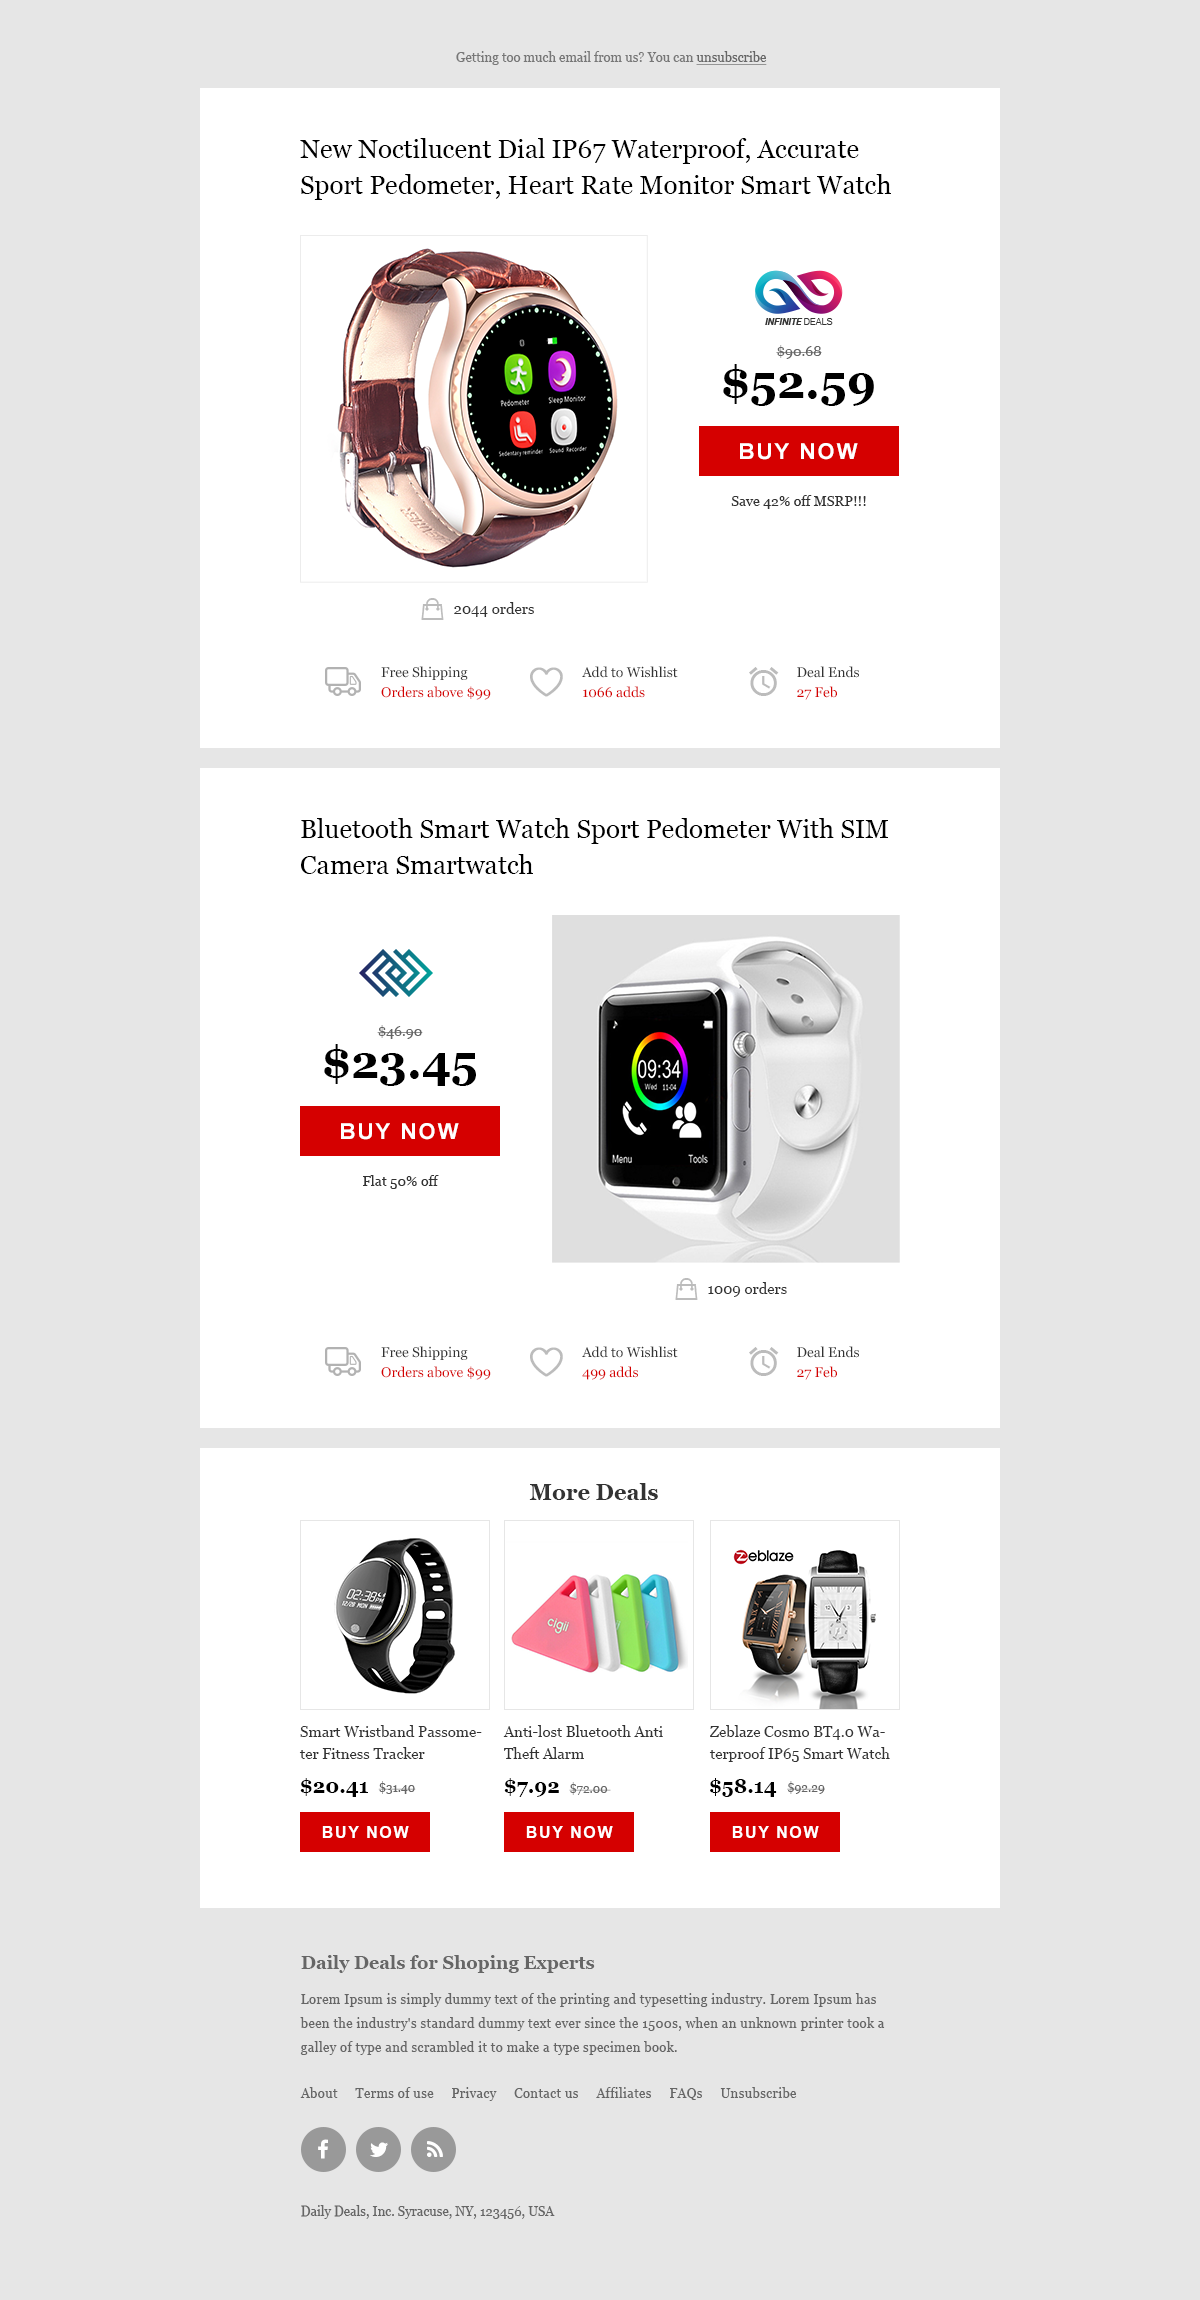 Daily Deals Ecommerce Website Newsletter